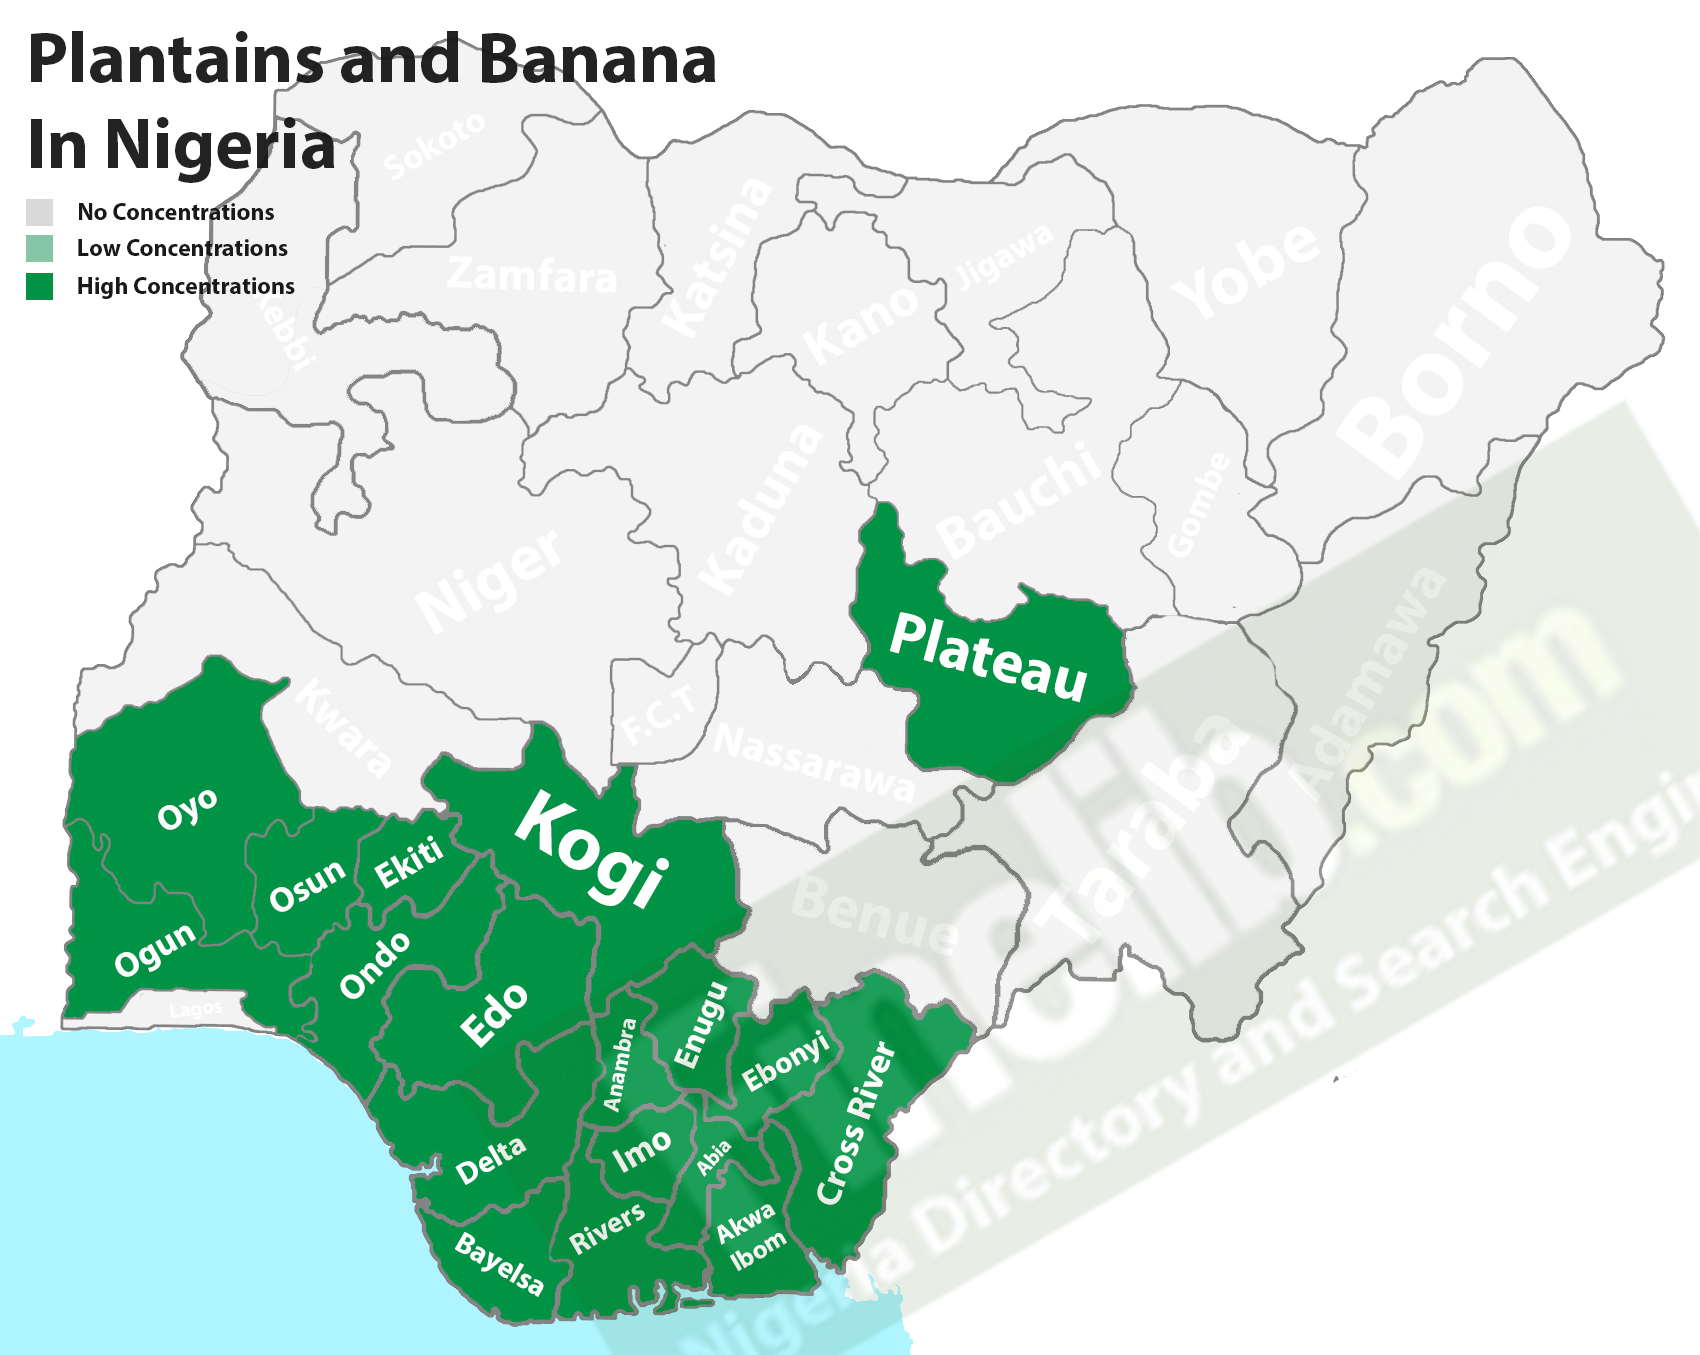 Plantain and banana cash crop producing states in Nigeria